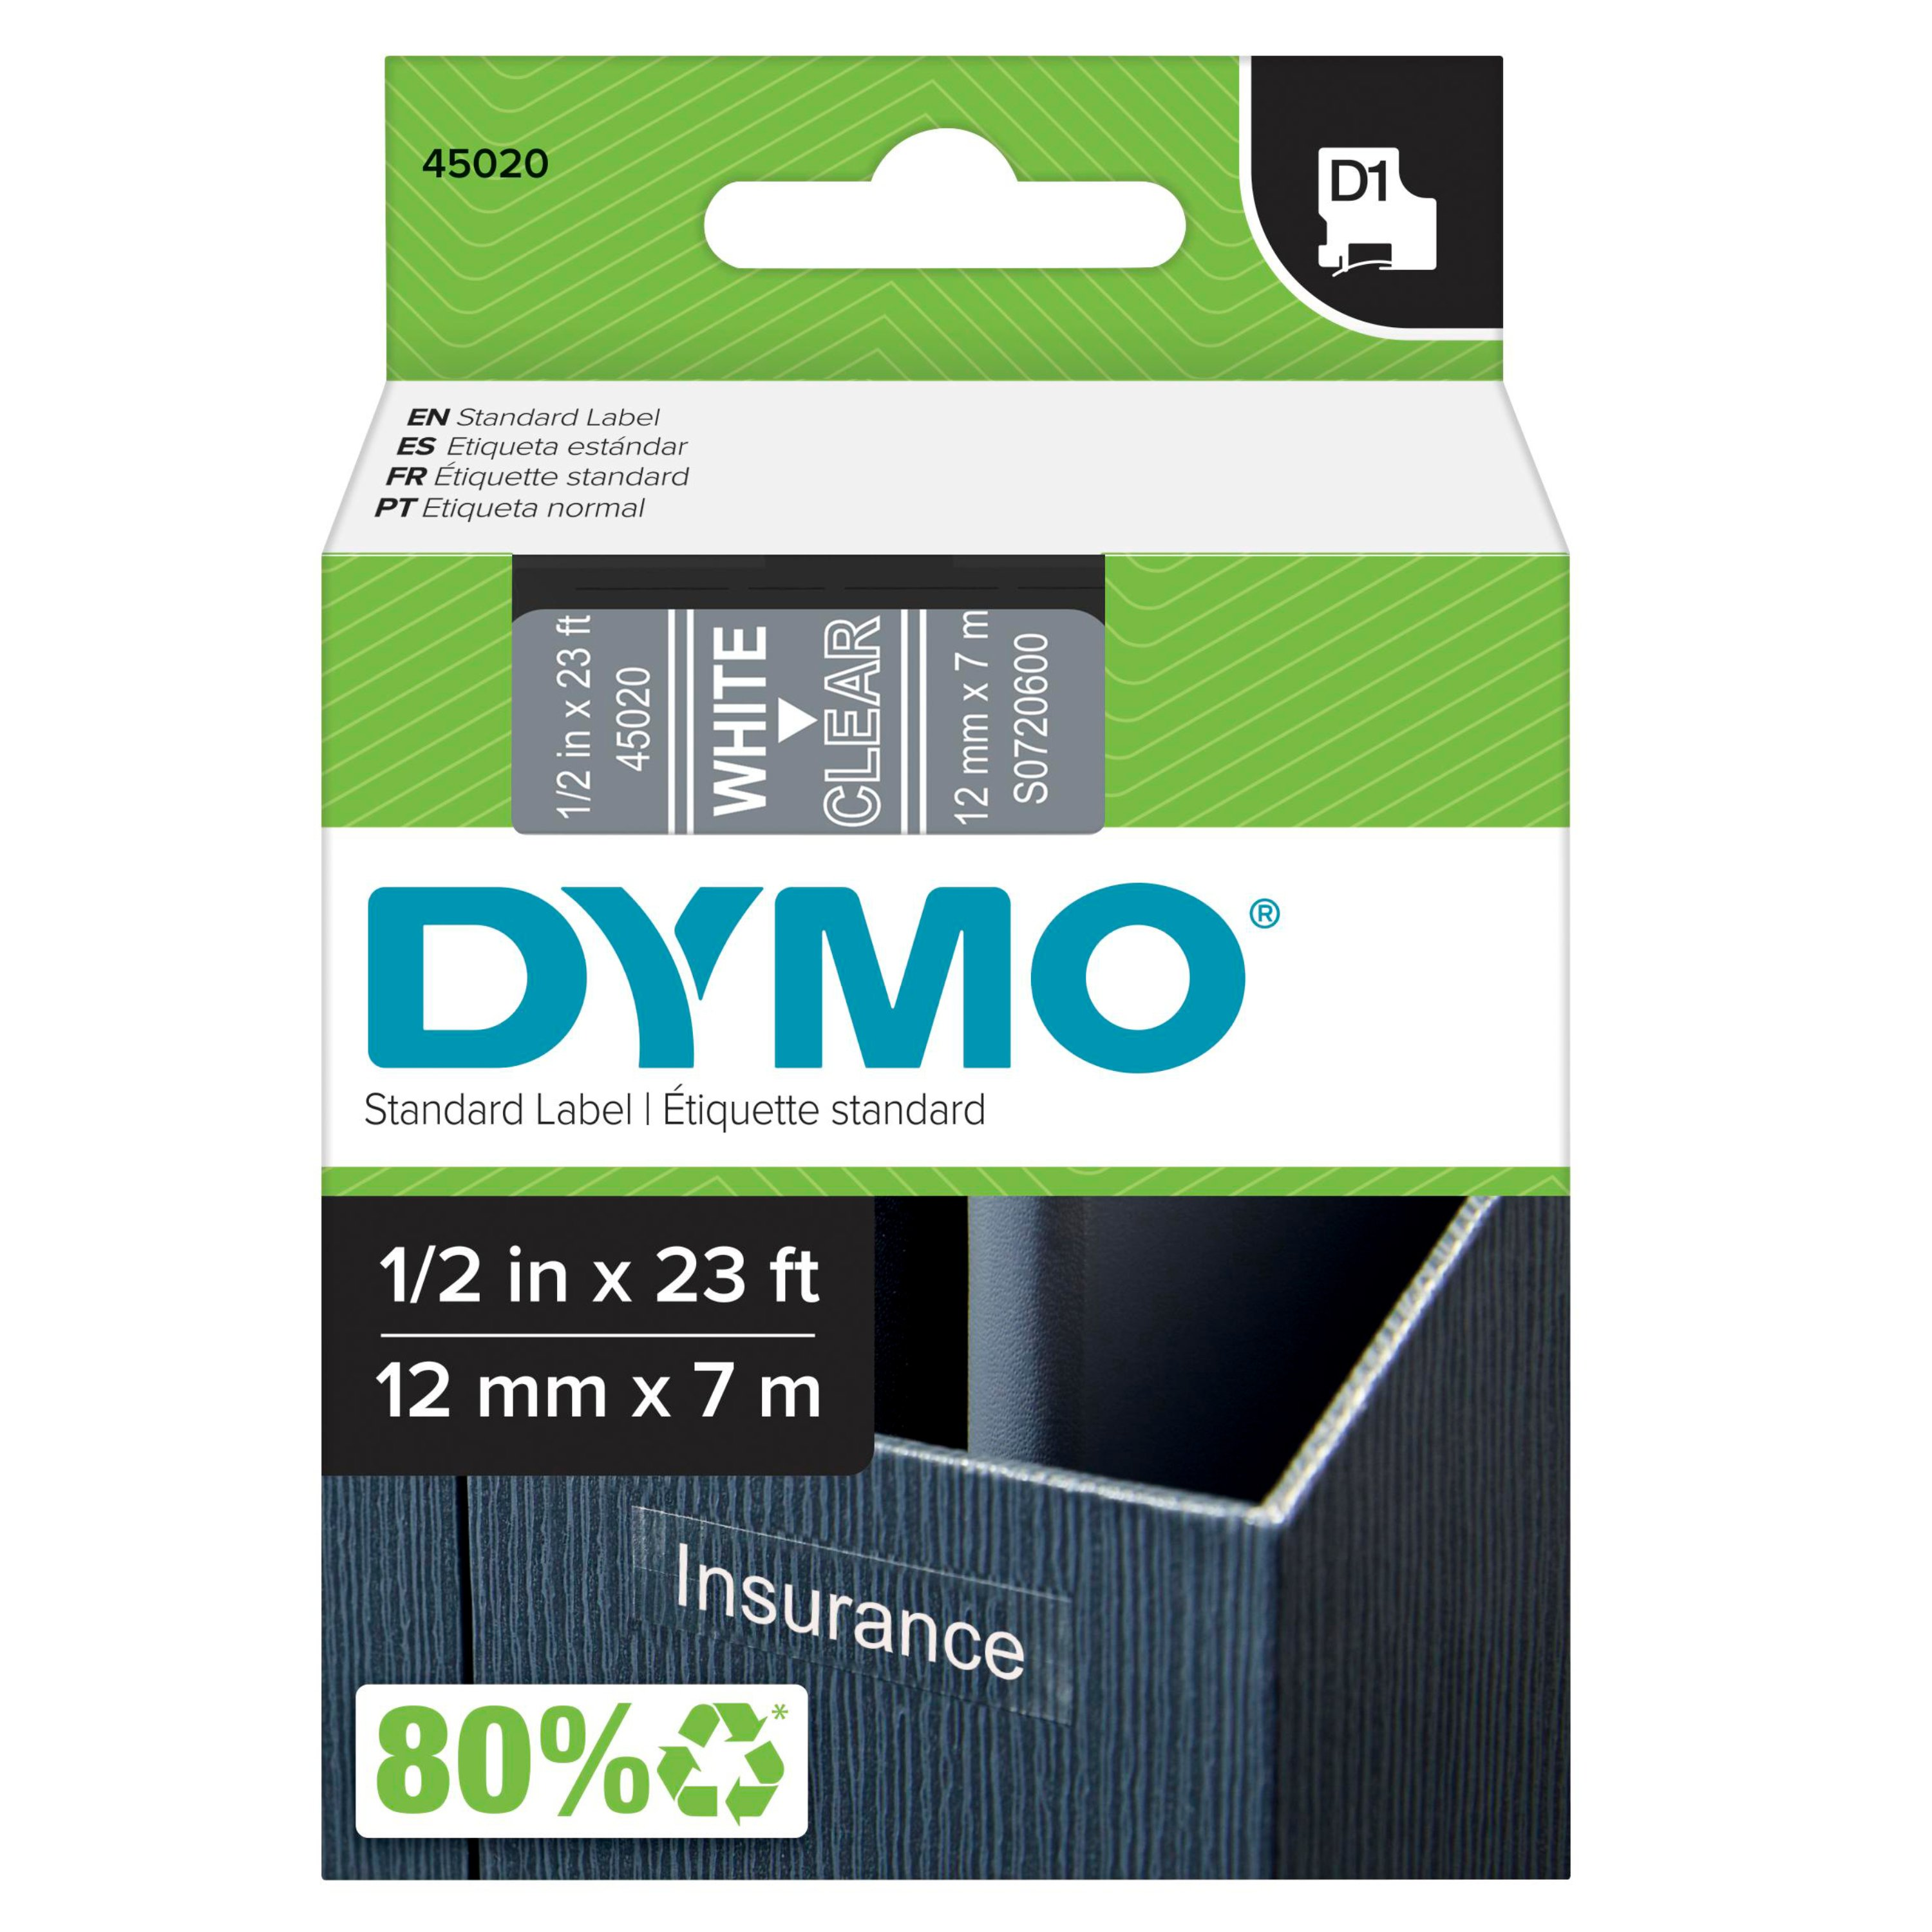 "D1 High-Performance Polyester Removable Label Tape, 1/2"" x 23 ft, White on Clear"